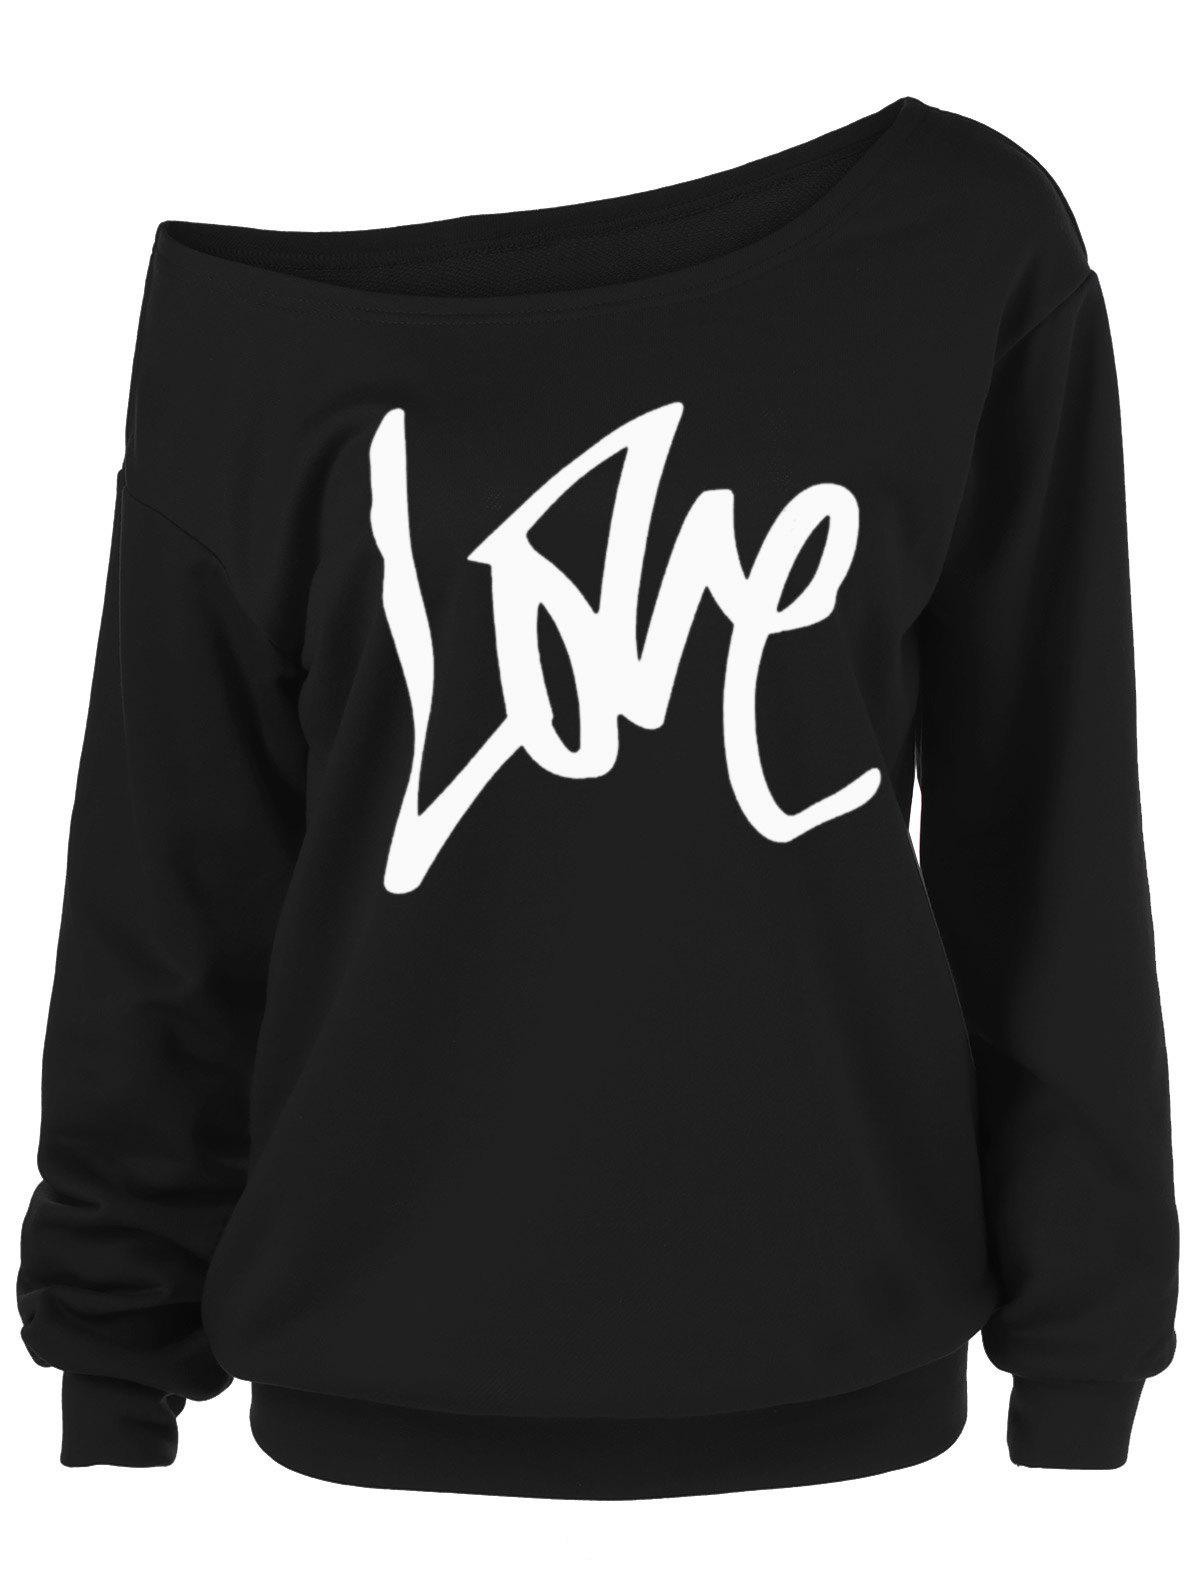 Sale Skew Collar Love Plus Size Sweatshirt